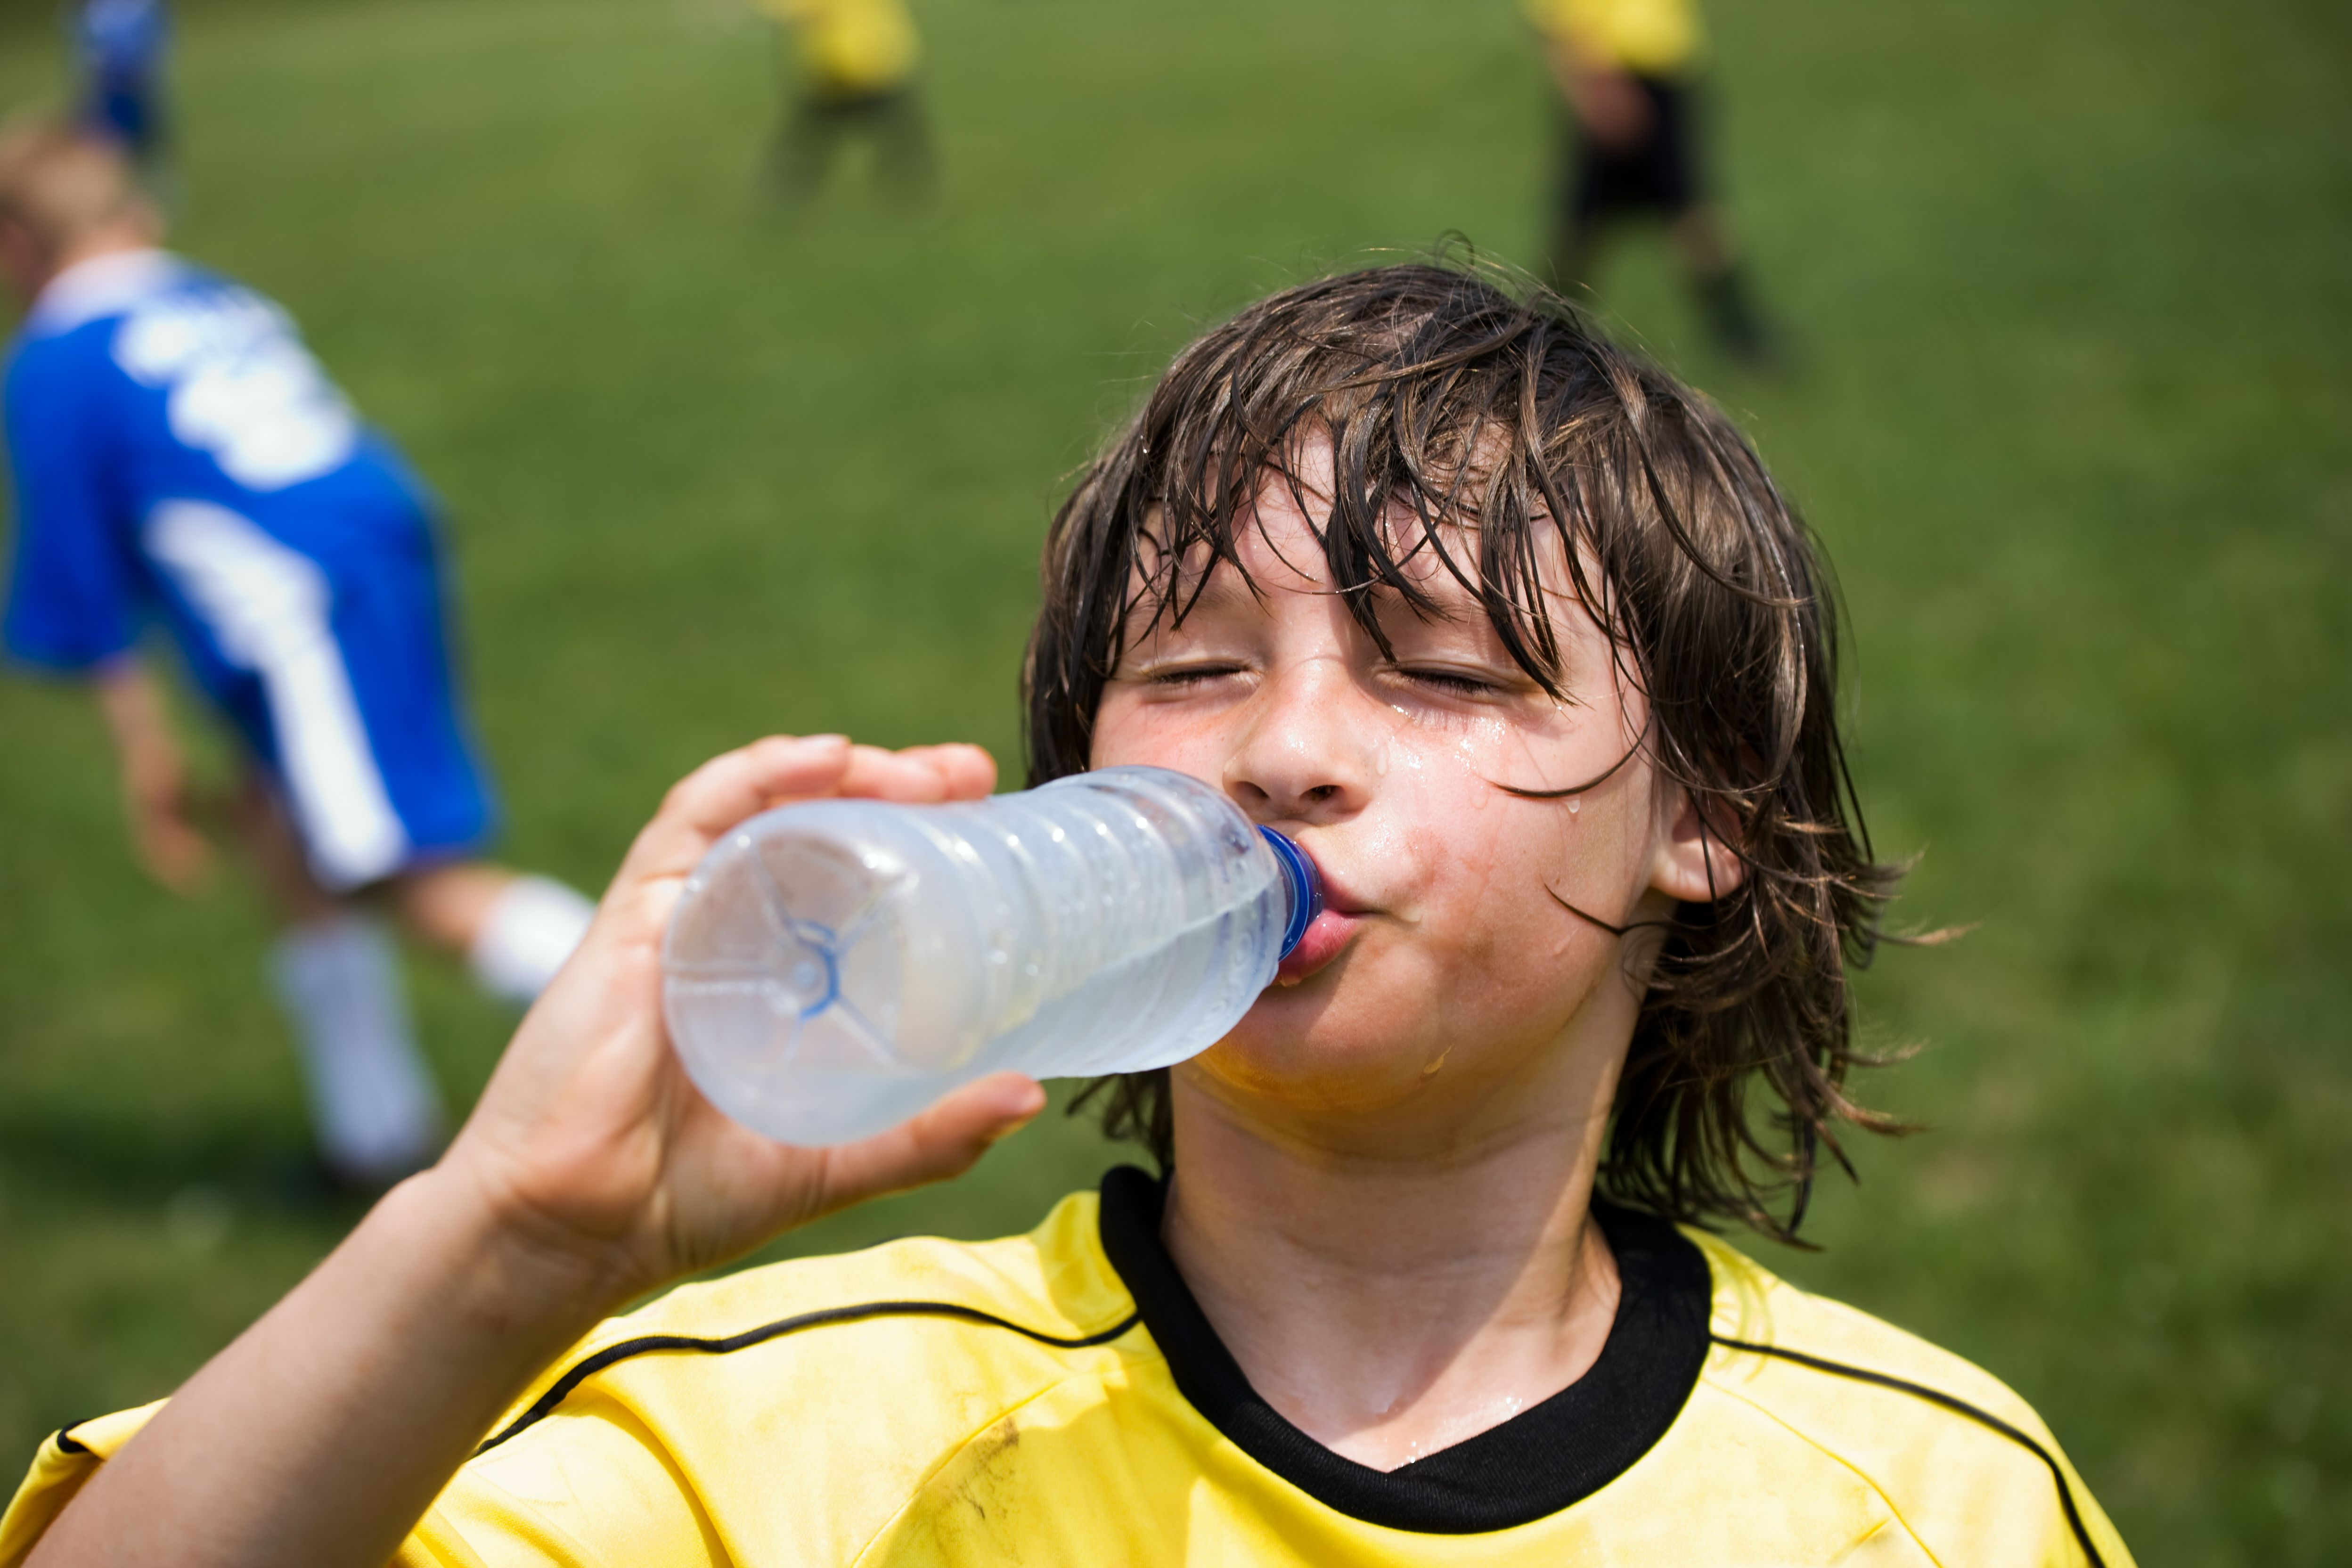 How Your Student Athlete Can Beat the Heat Heat rash